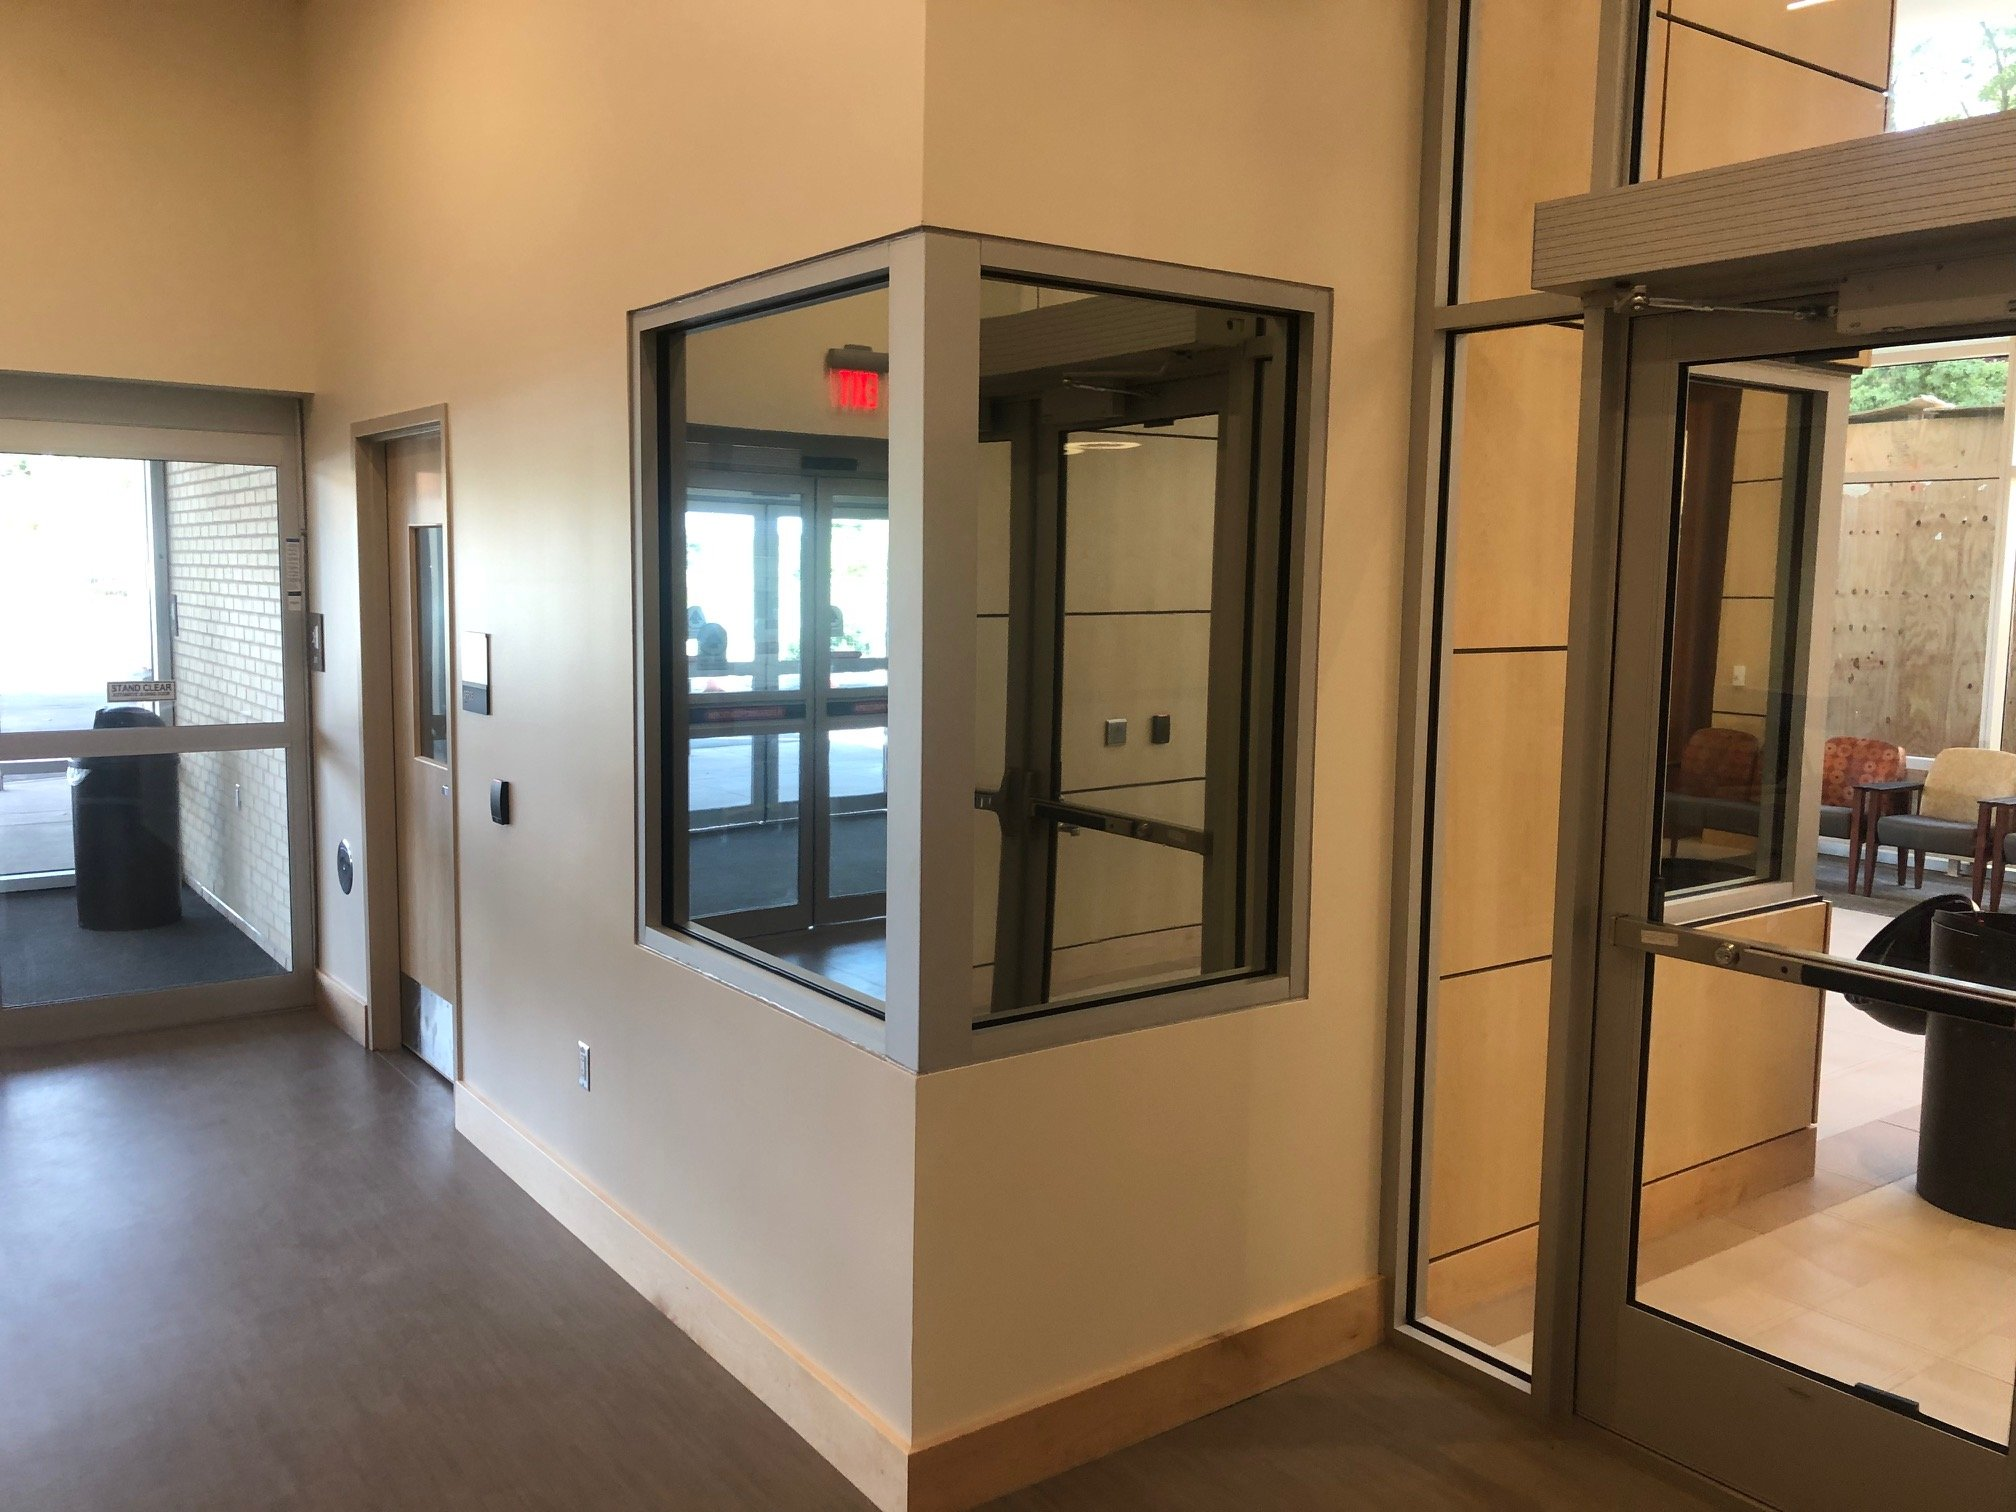 Privacy Window Film Used in Hazleton, Pennsylvania Office Space - Commercial Window Tinting in Stroudsburg, Pennsylvania, the Poconos, Lehigh Valley and Beyond